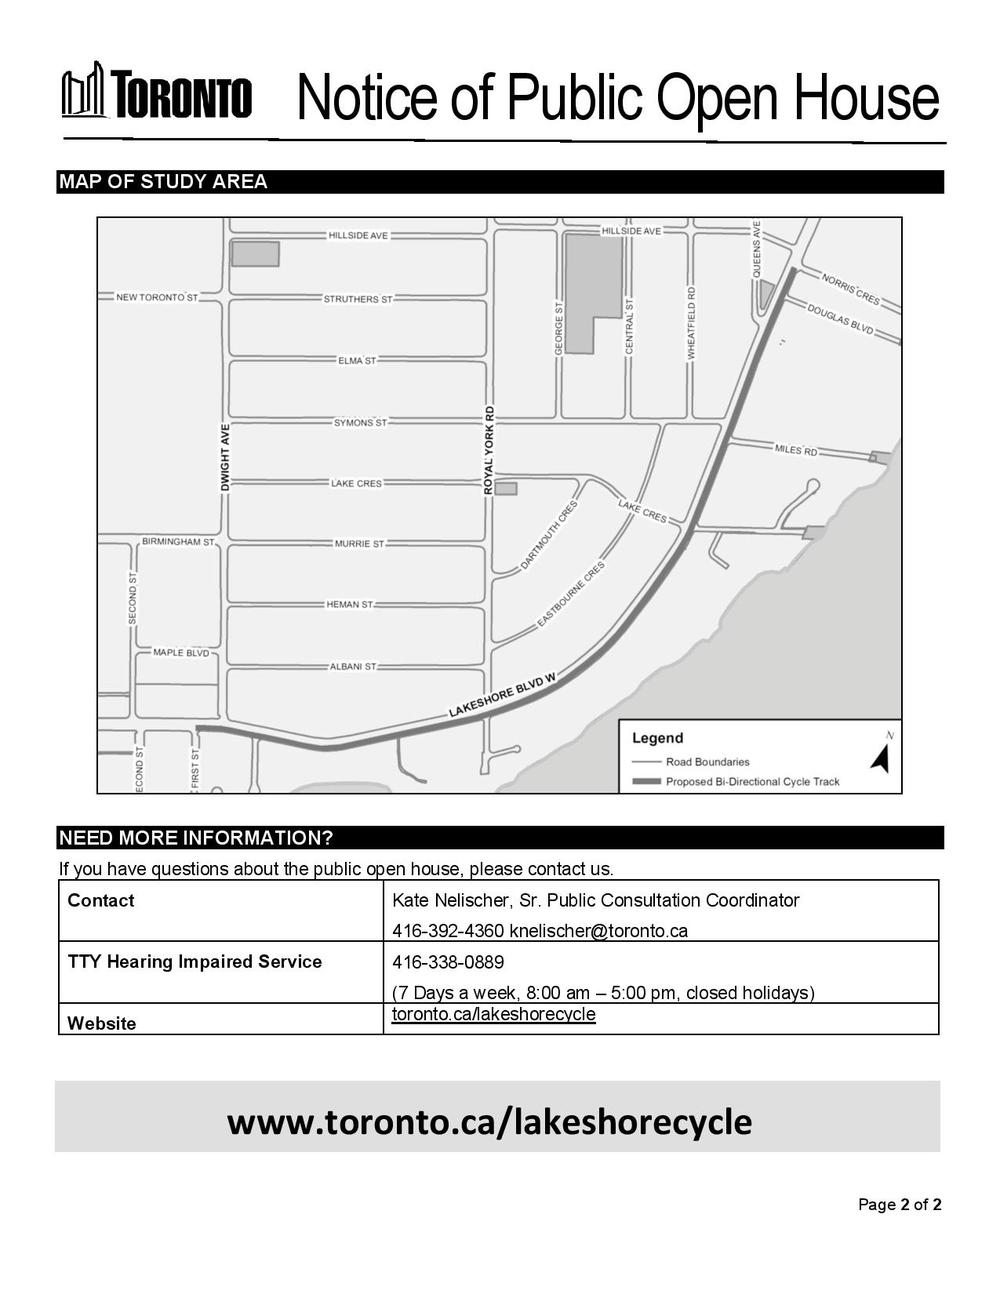 Lake Shore Cycle Track Public Meeting Notice_2015_Final-page-002.jpg